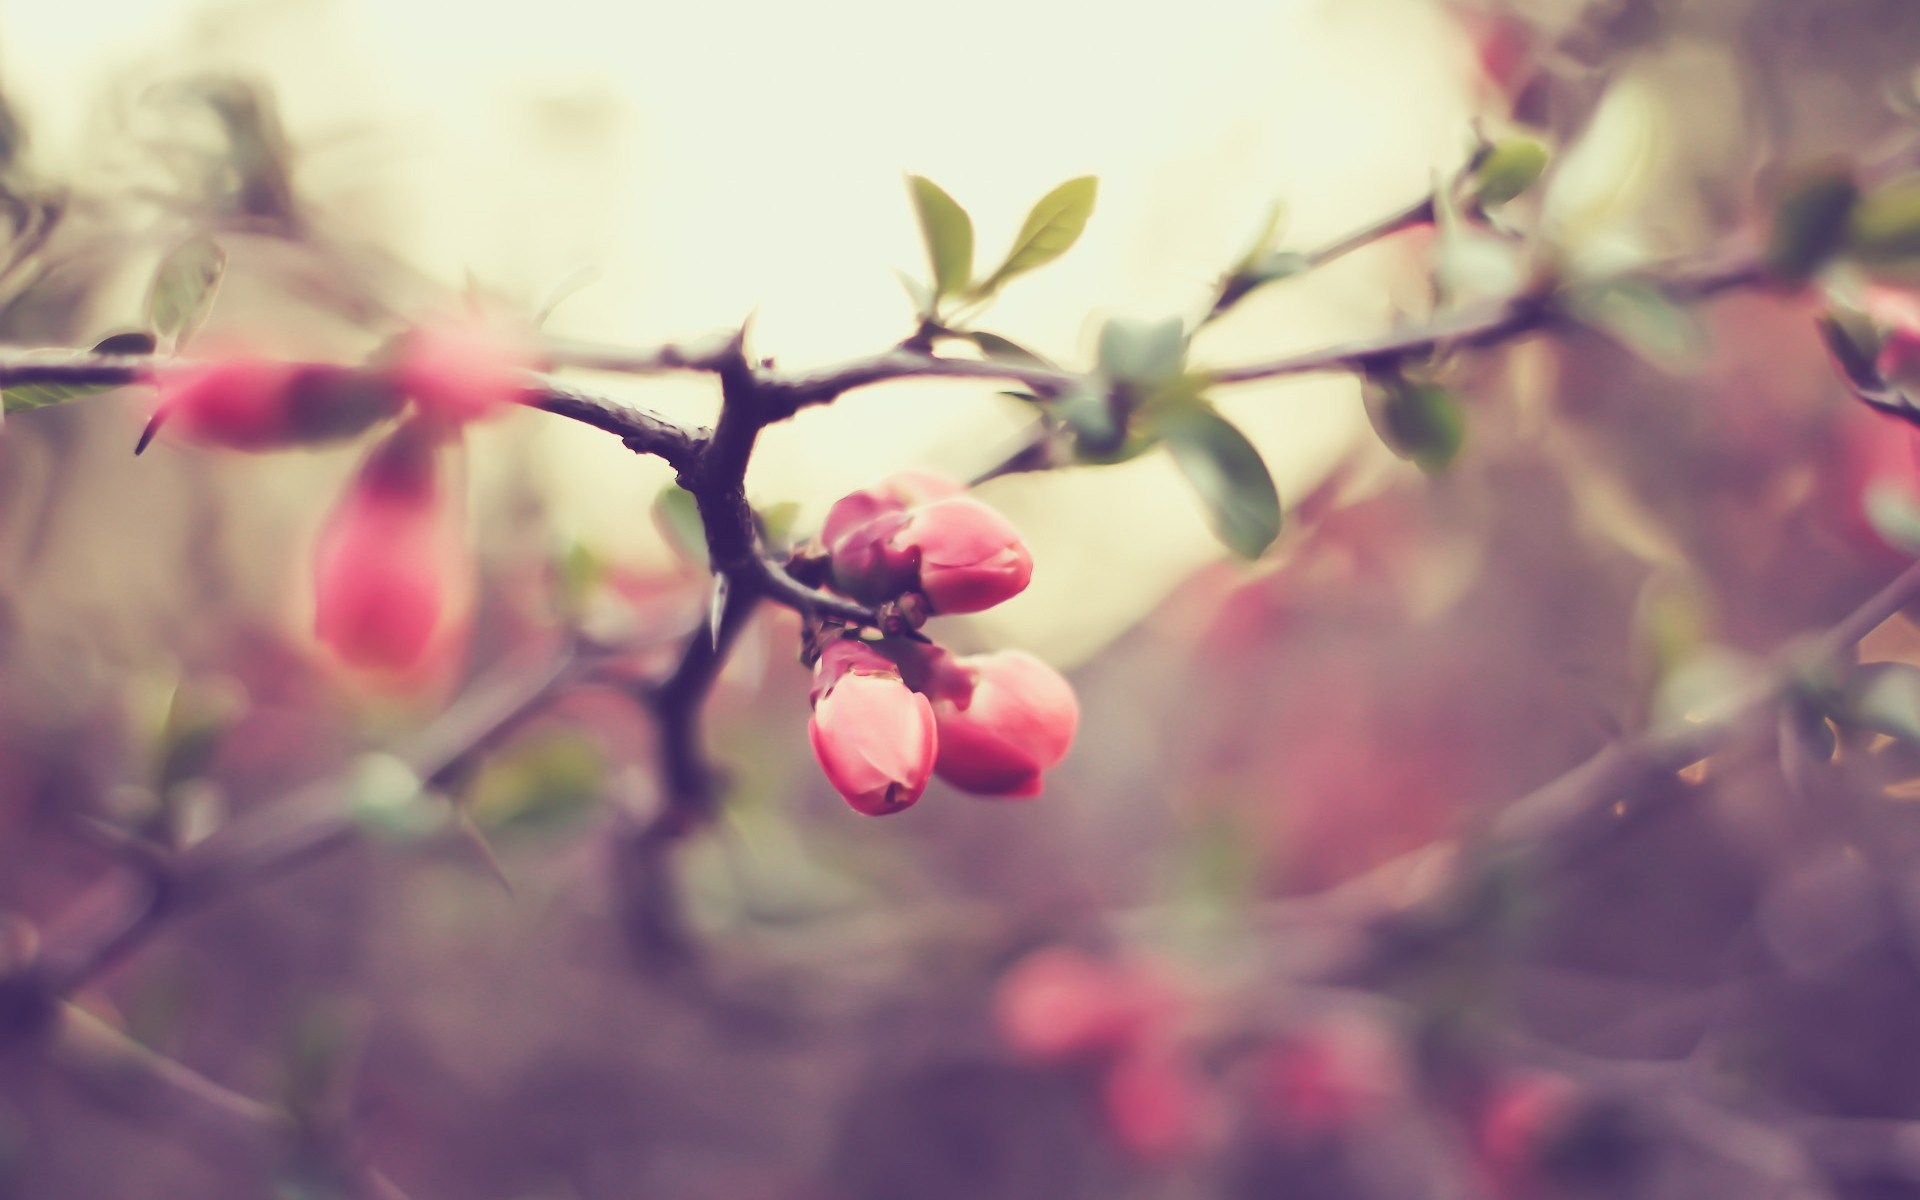 Branch Pink Flowers Nature Macro HD Wallpaper